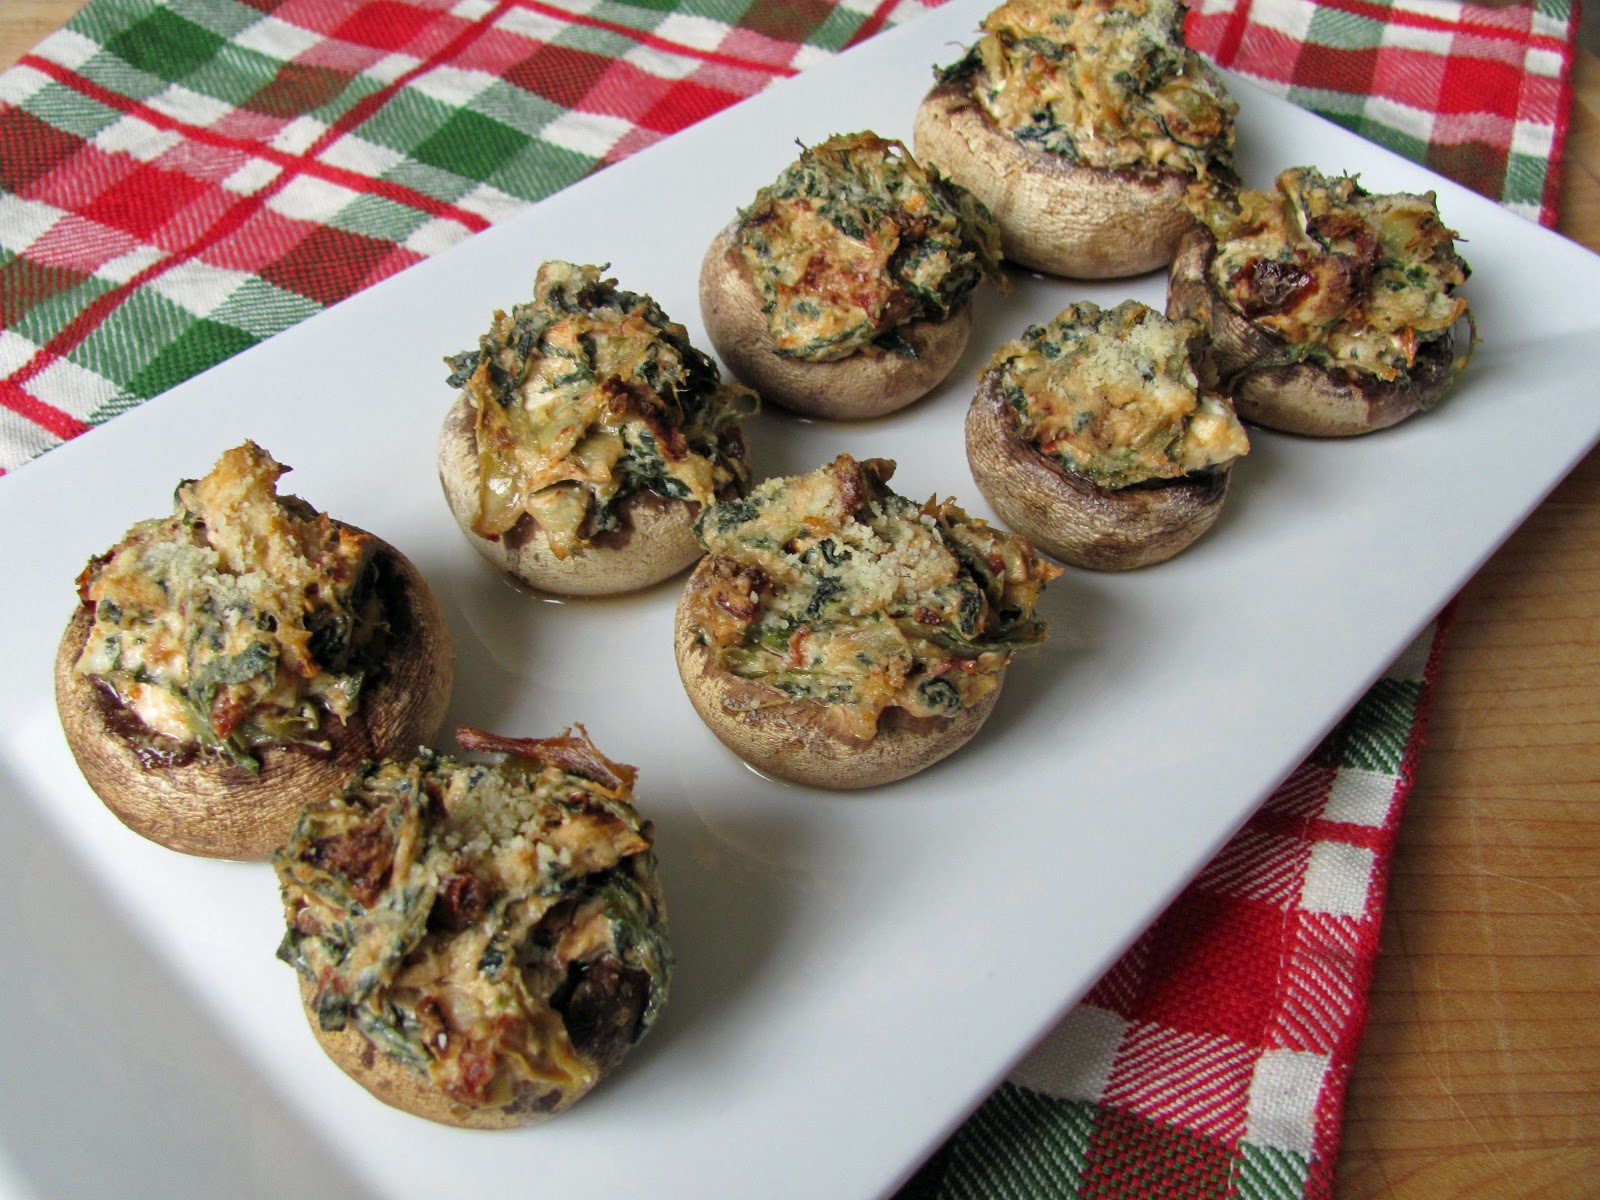 The Girly Girl Cooks: Artichoke & Sun-Dried Tomato Stuffed Mushrooms